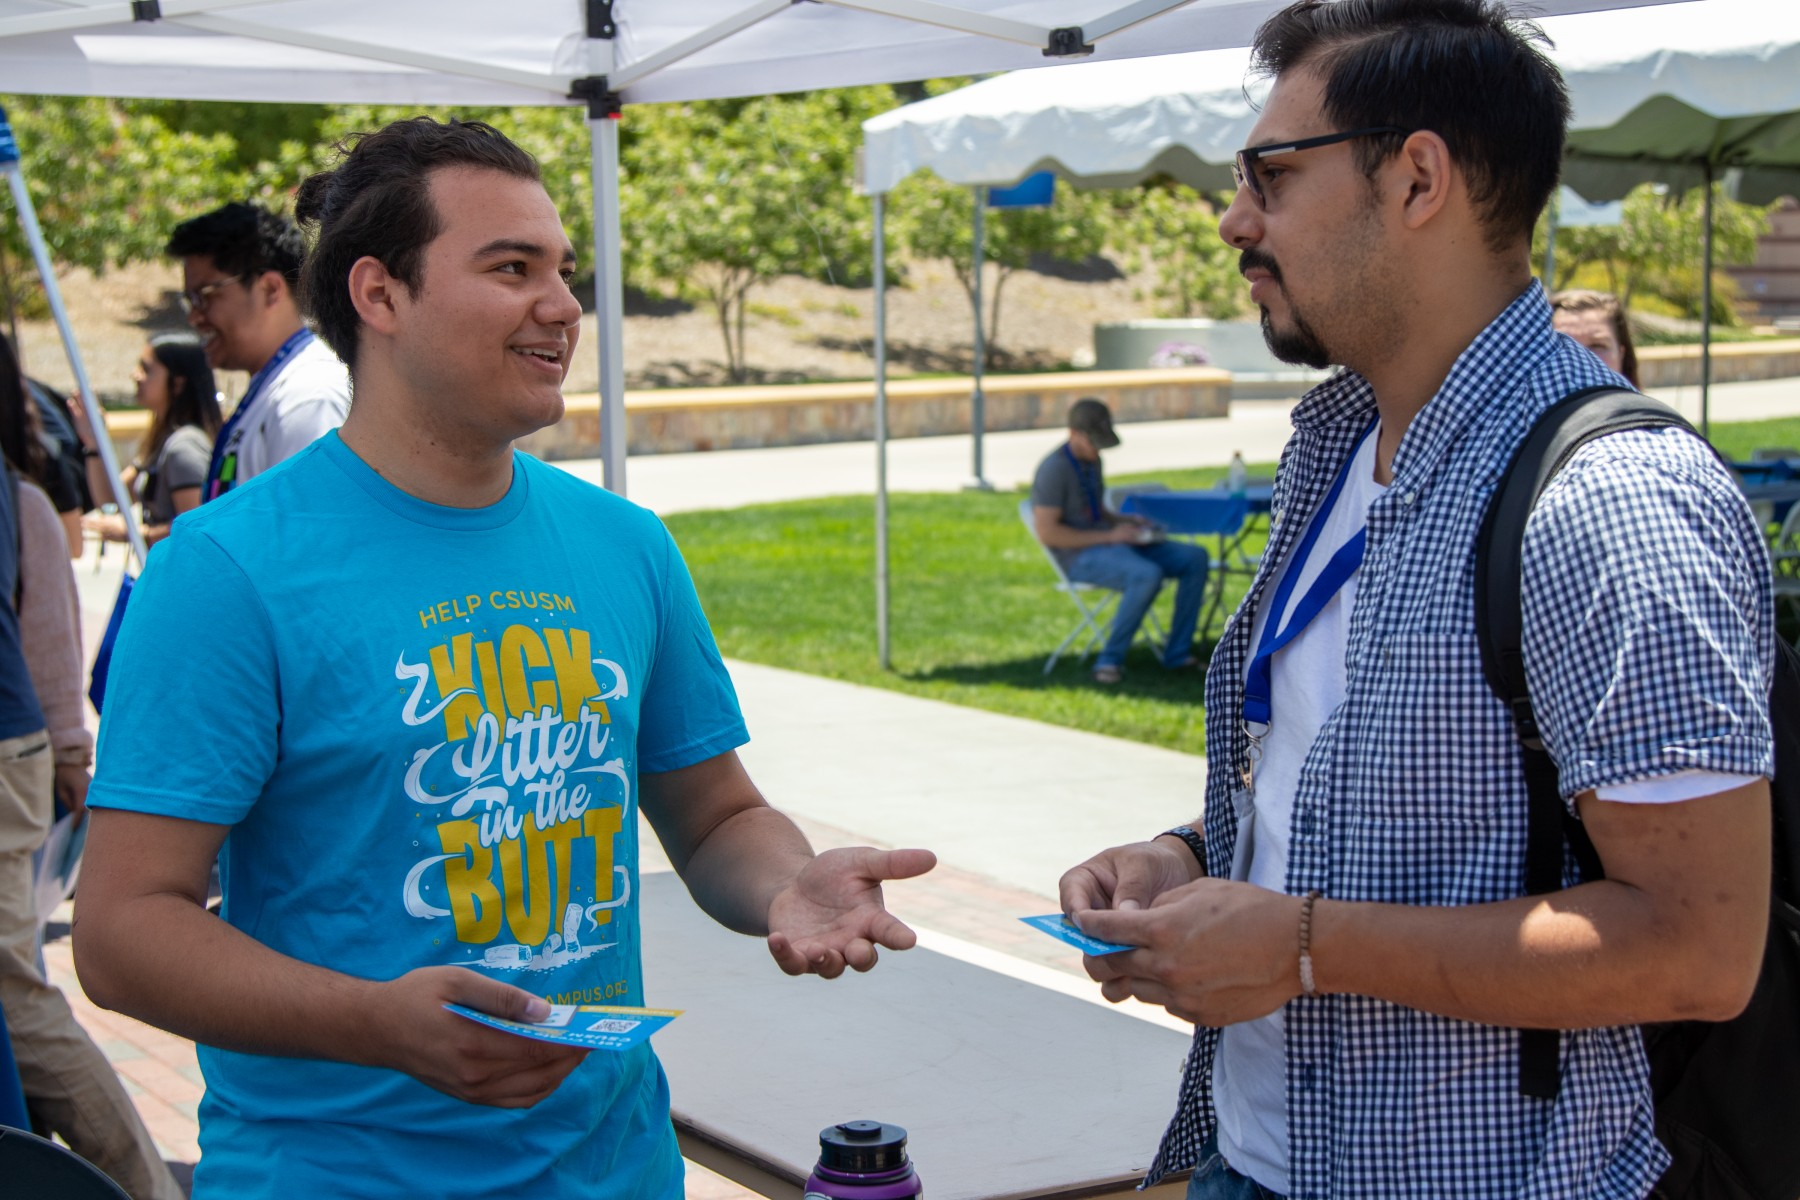 CSUSM celebrates its two-year anniversary as a smoke- and tobacco-free campus on Aug. 28.